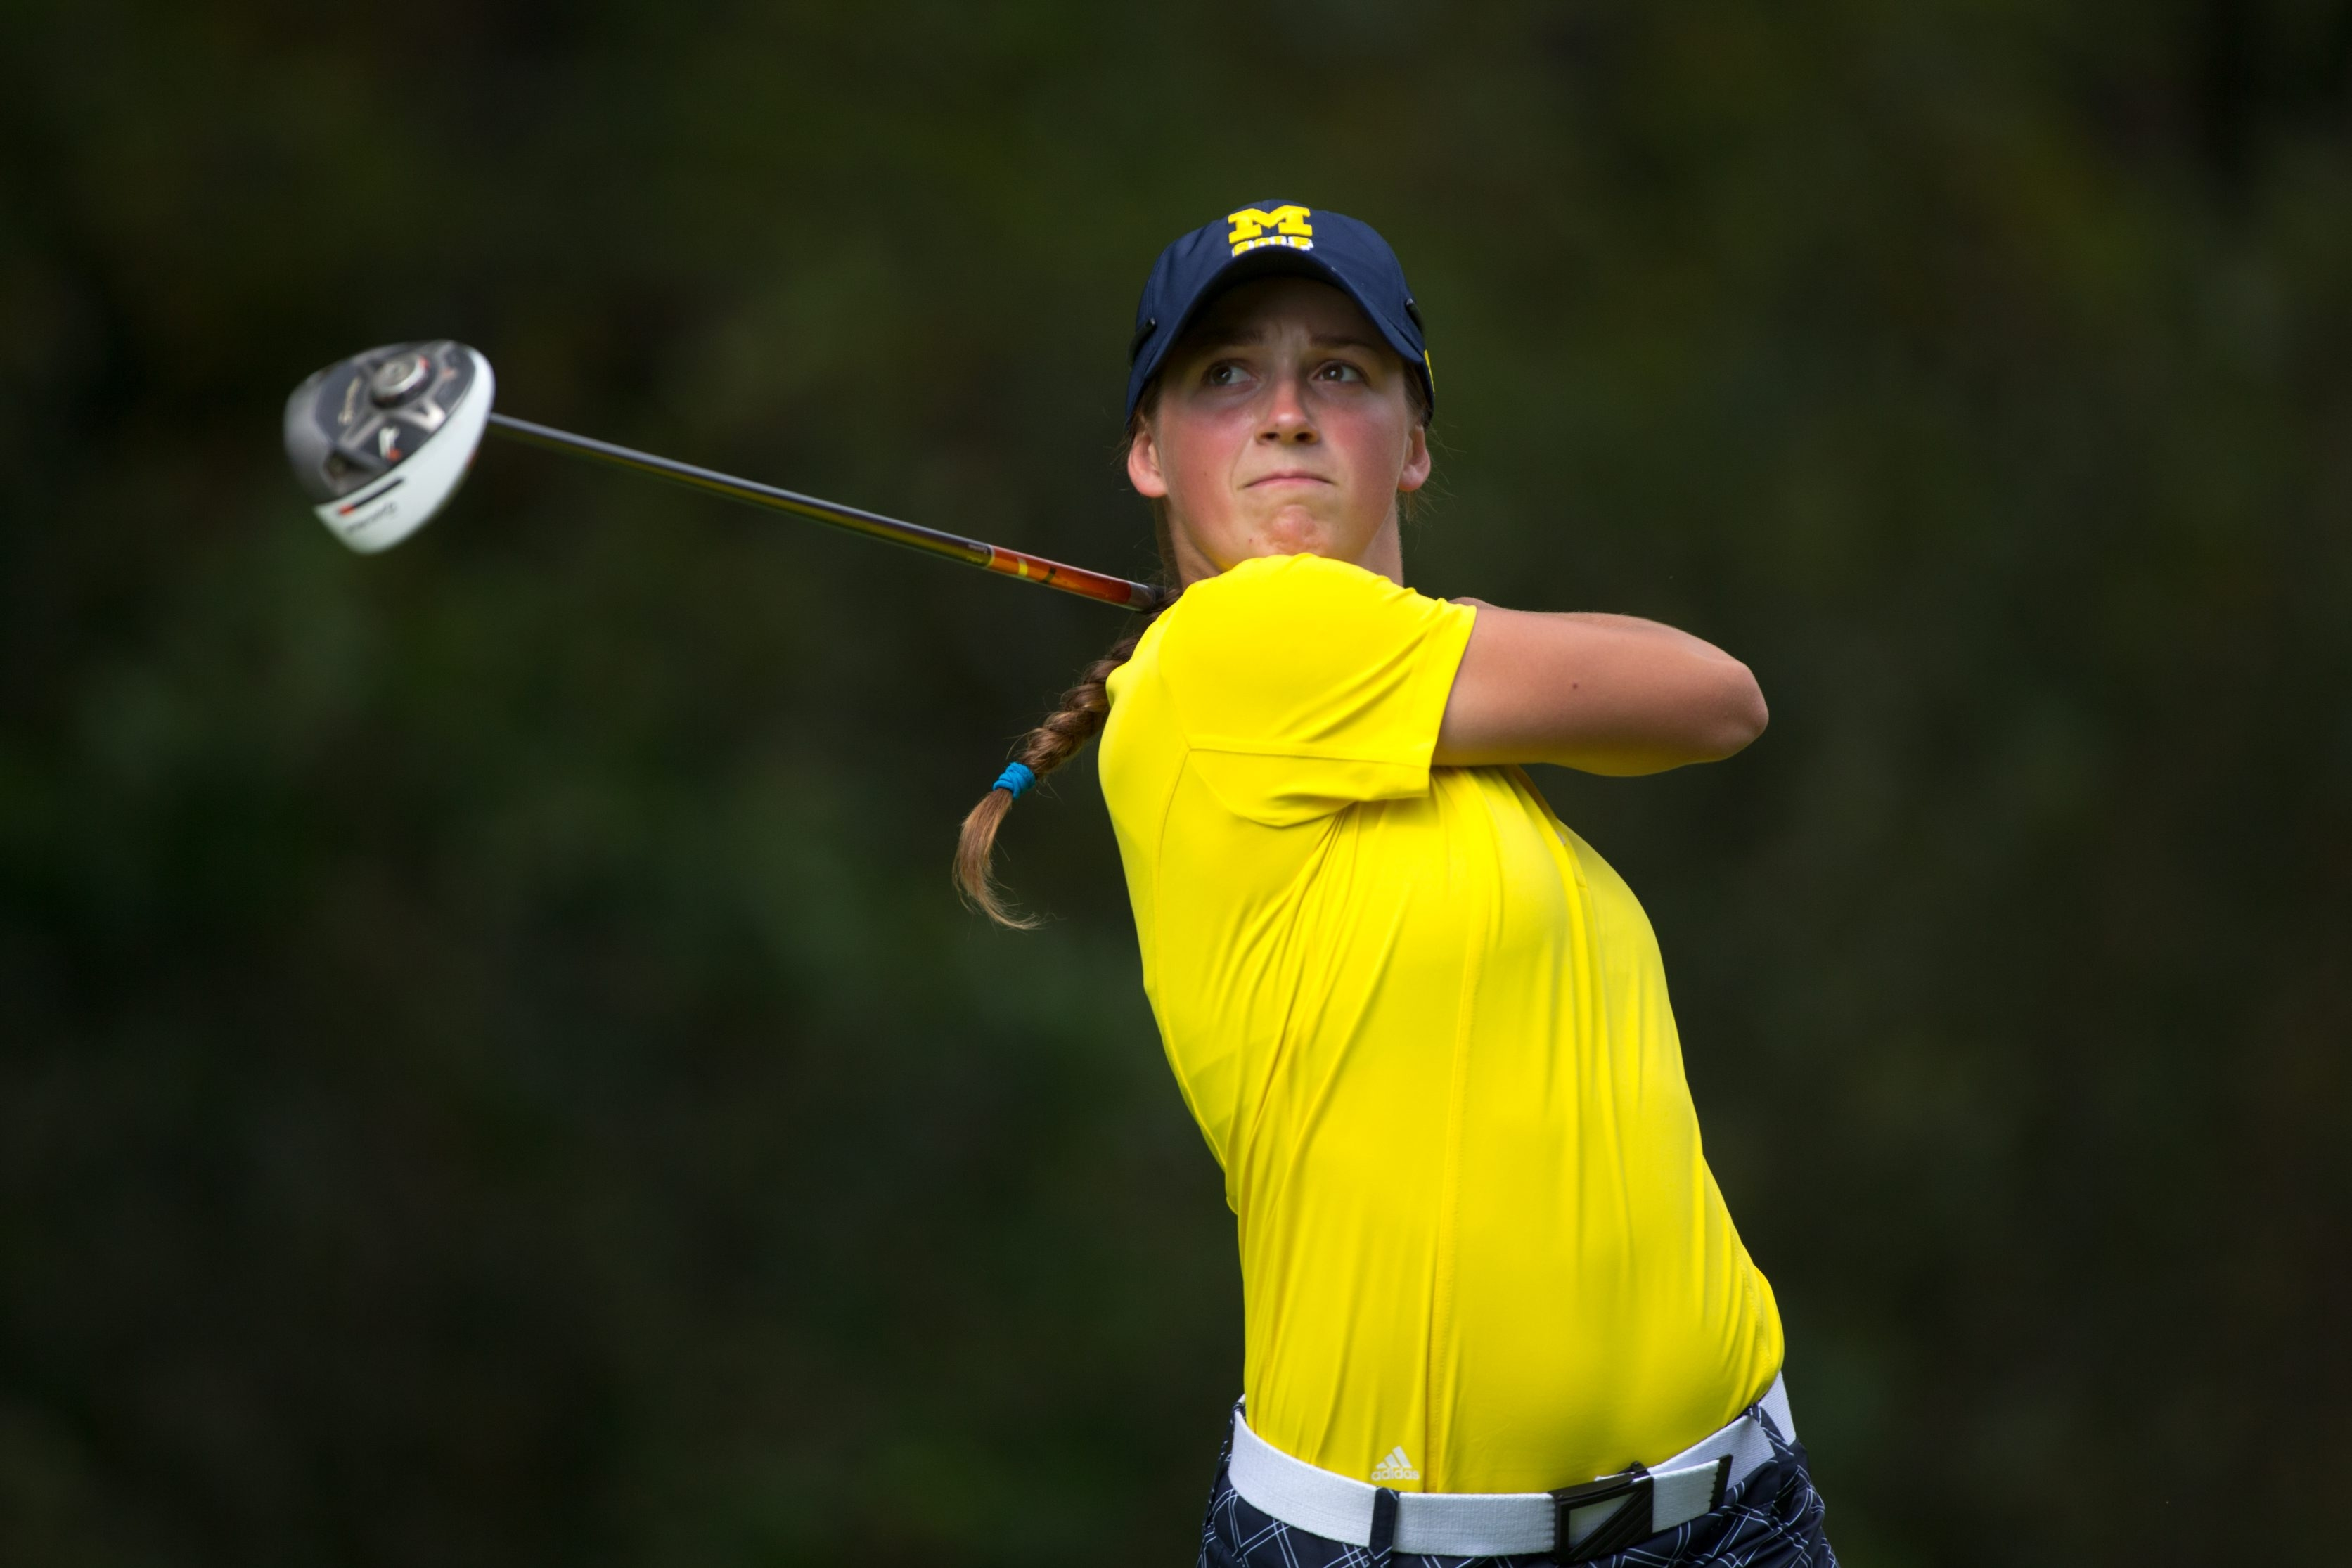 Cat Peters, who just finished her junior year at Michigan, will get a taste of the LPGA Tour after qualifying for the Meijer LPGA Classic.